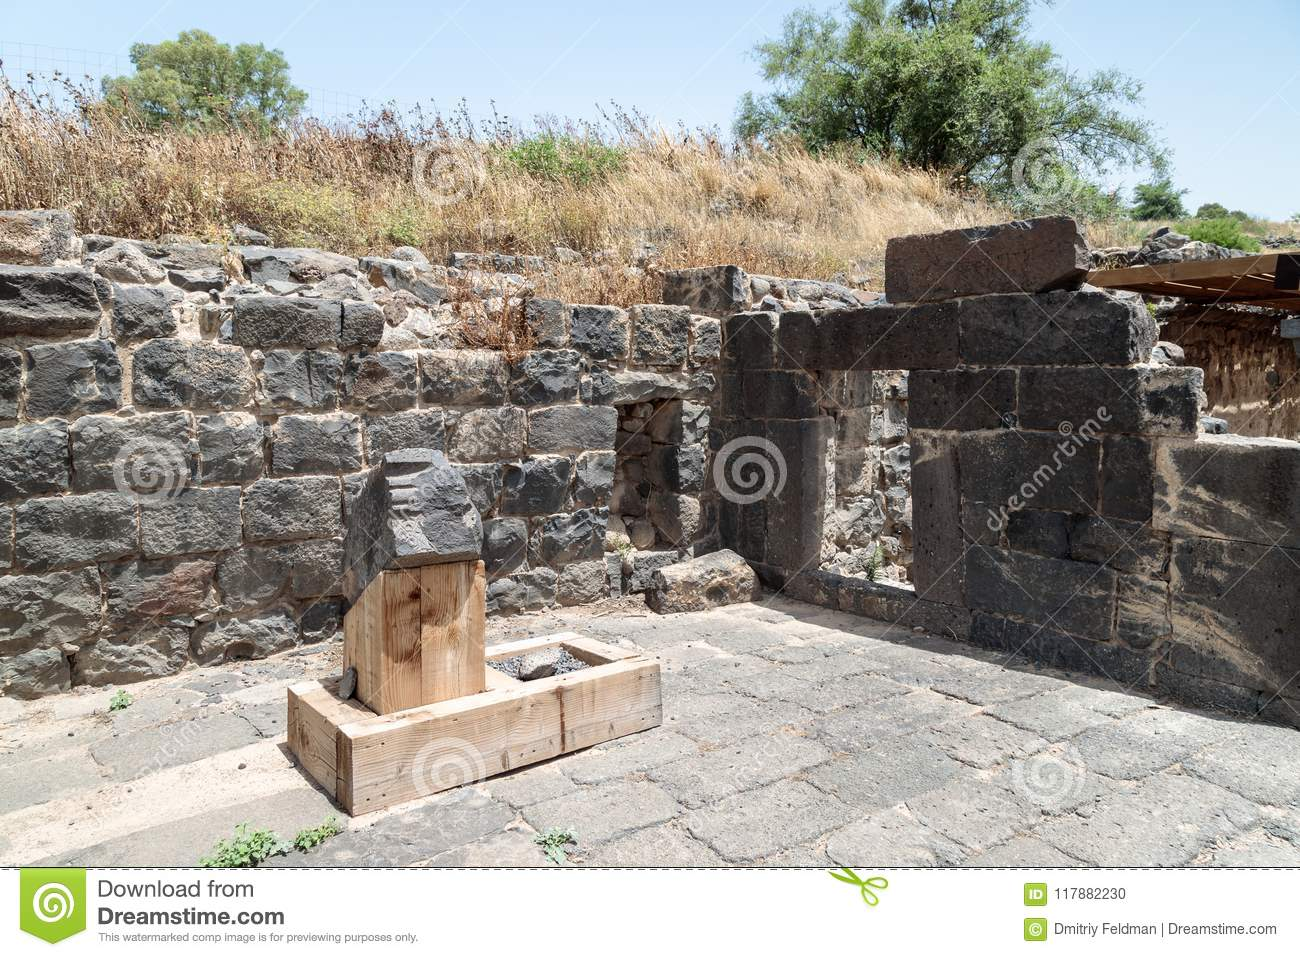 Ruins of the Dir Aziz Synagogue, built in the Byzantine period, at the beginning of the sixth century AD. It is located on the Gol